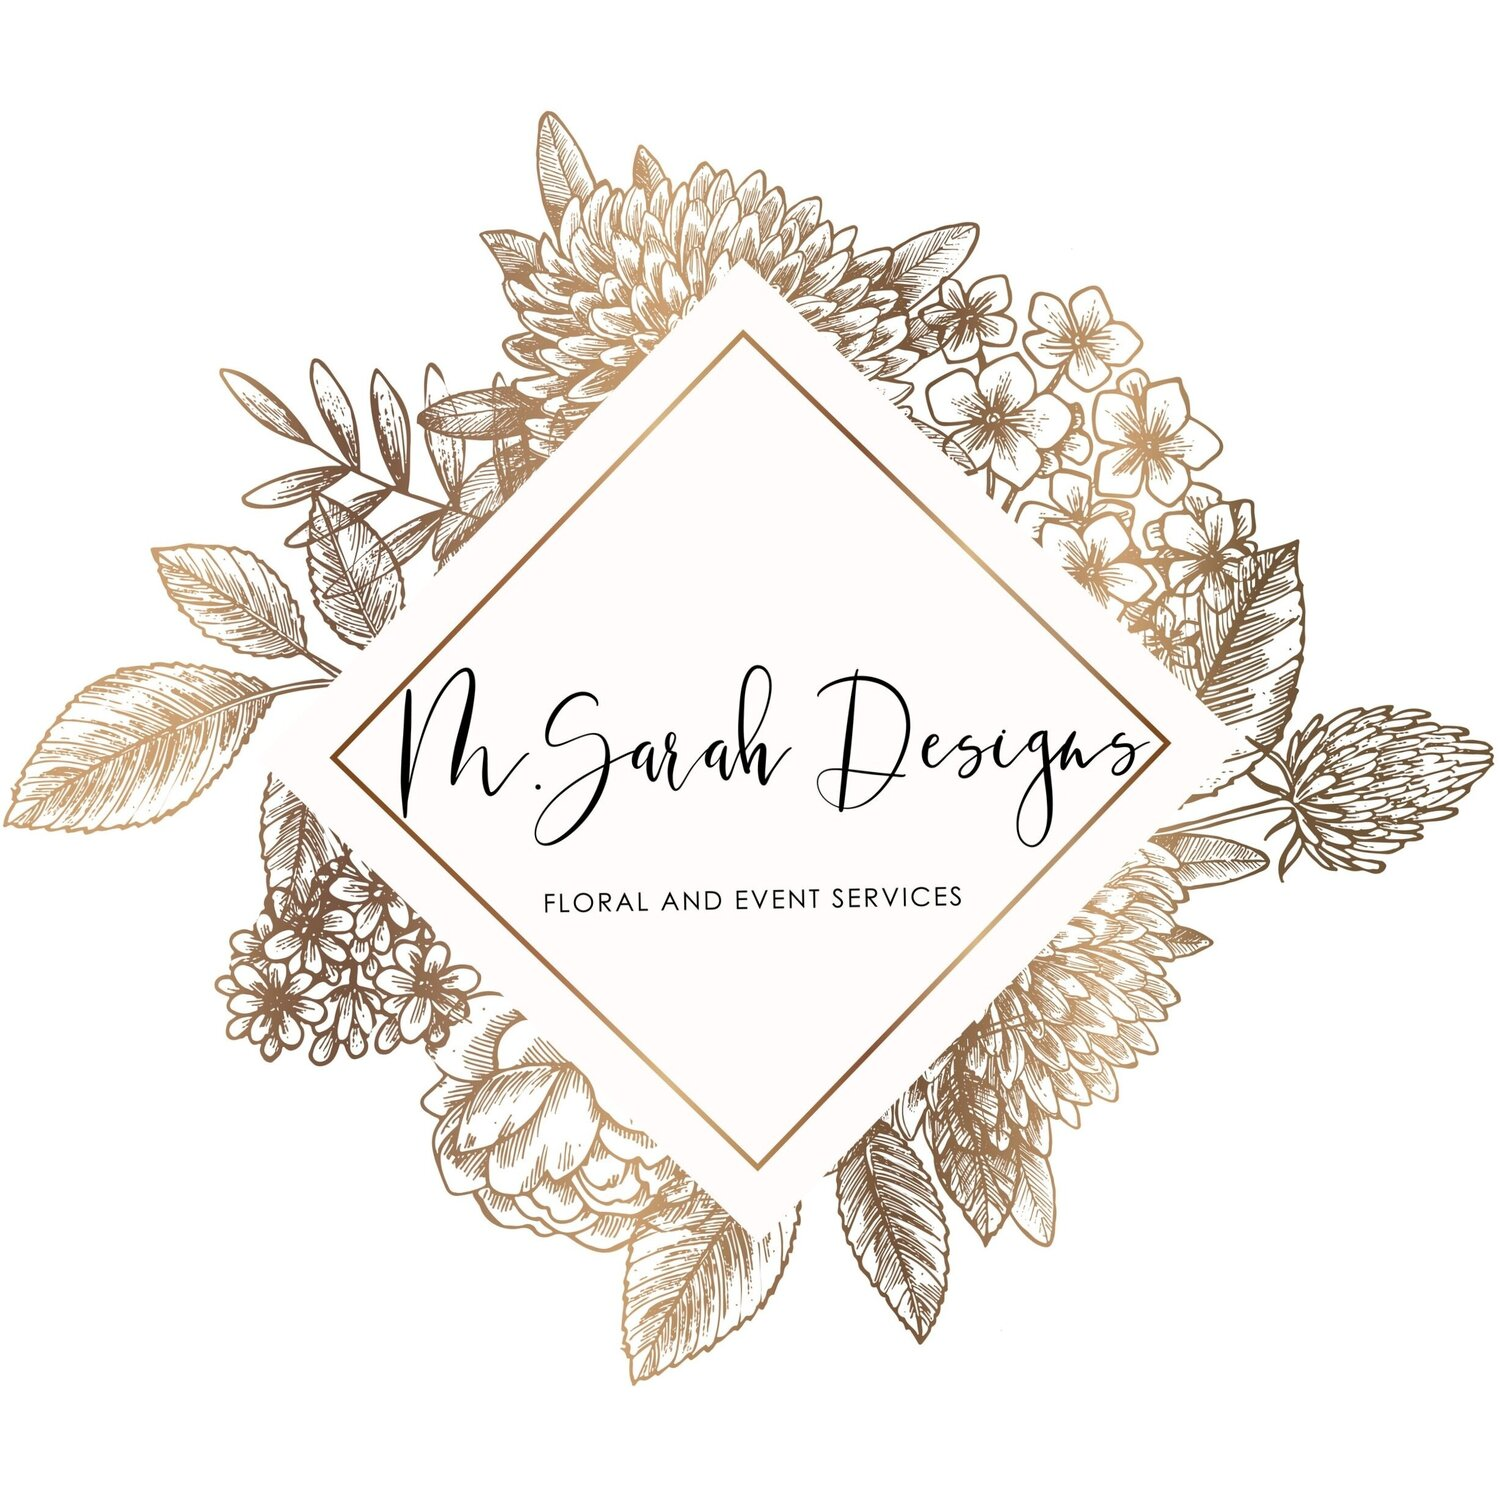 M.Sarah Designs- FLORAL AND EVENT DESIGN SERVICES